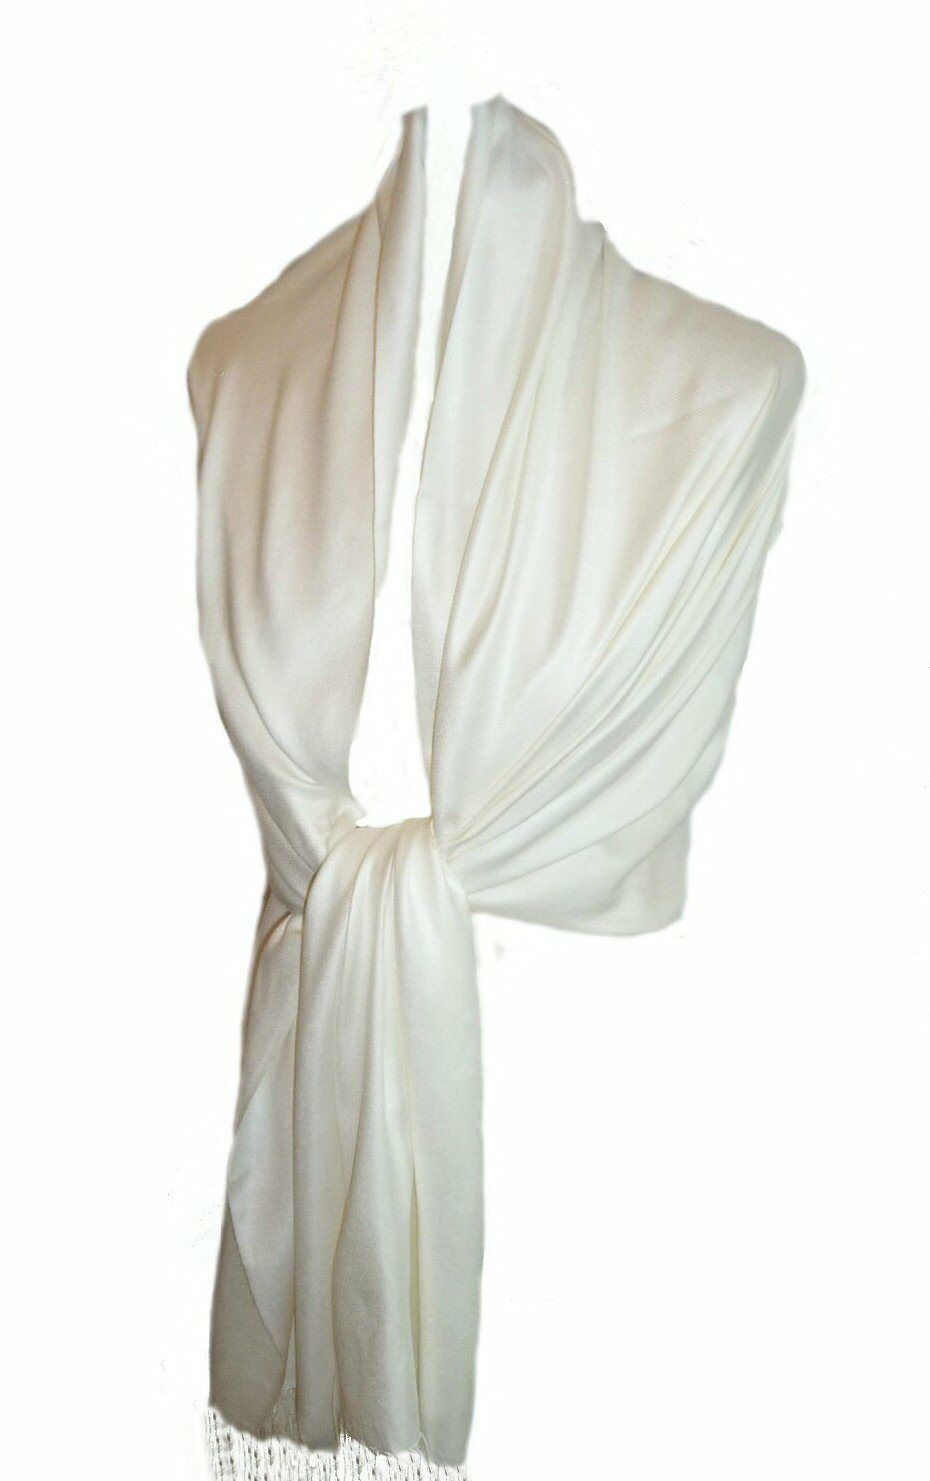 Pashmina Shawl Wrap Scarf. The Bridal Outlet is proud to bring beautiful bridal accessories direct to the bride at amazingly low prices from the UK.